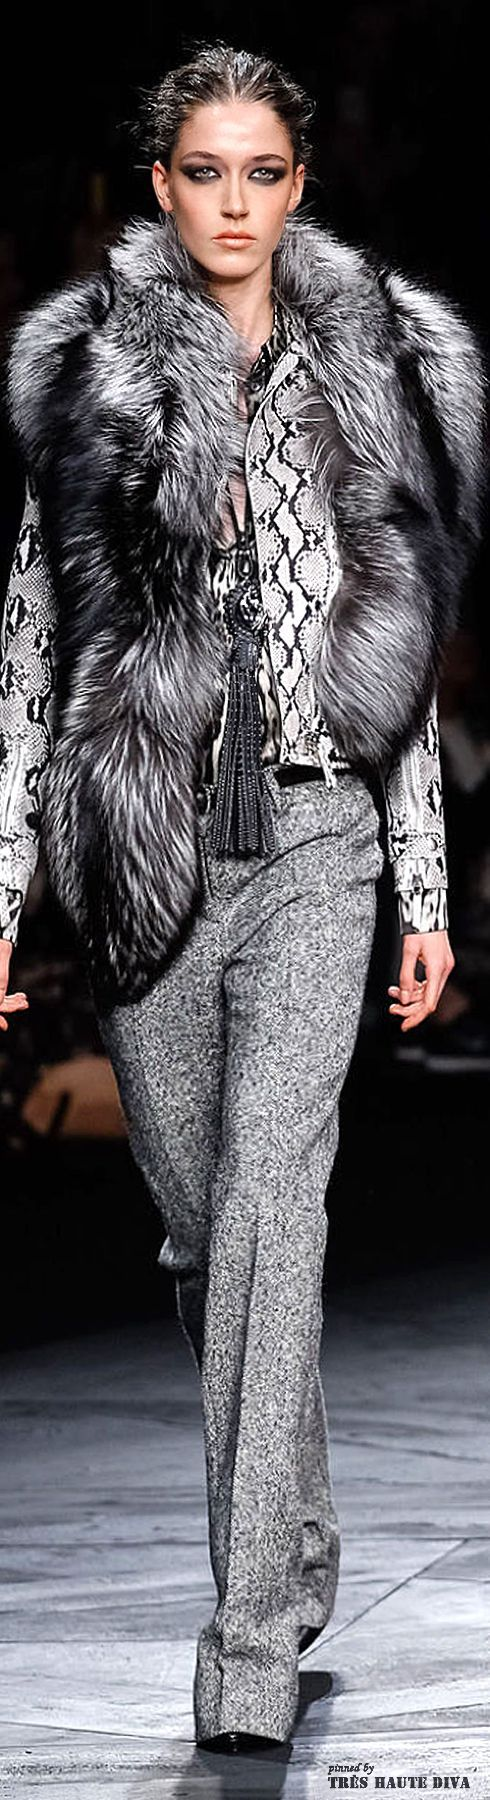 Milan Fashion Week Roberto Cavalli Fall Winter 2014 The House Of Beccaria 2014 Inspiration